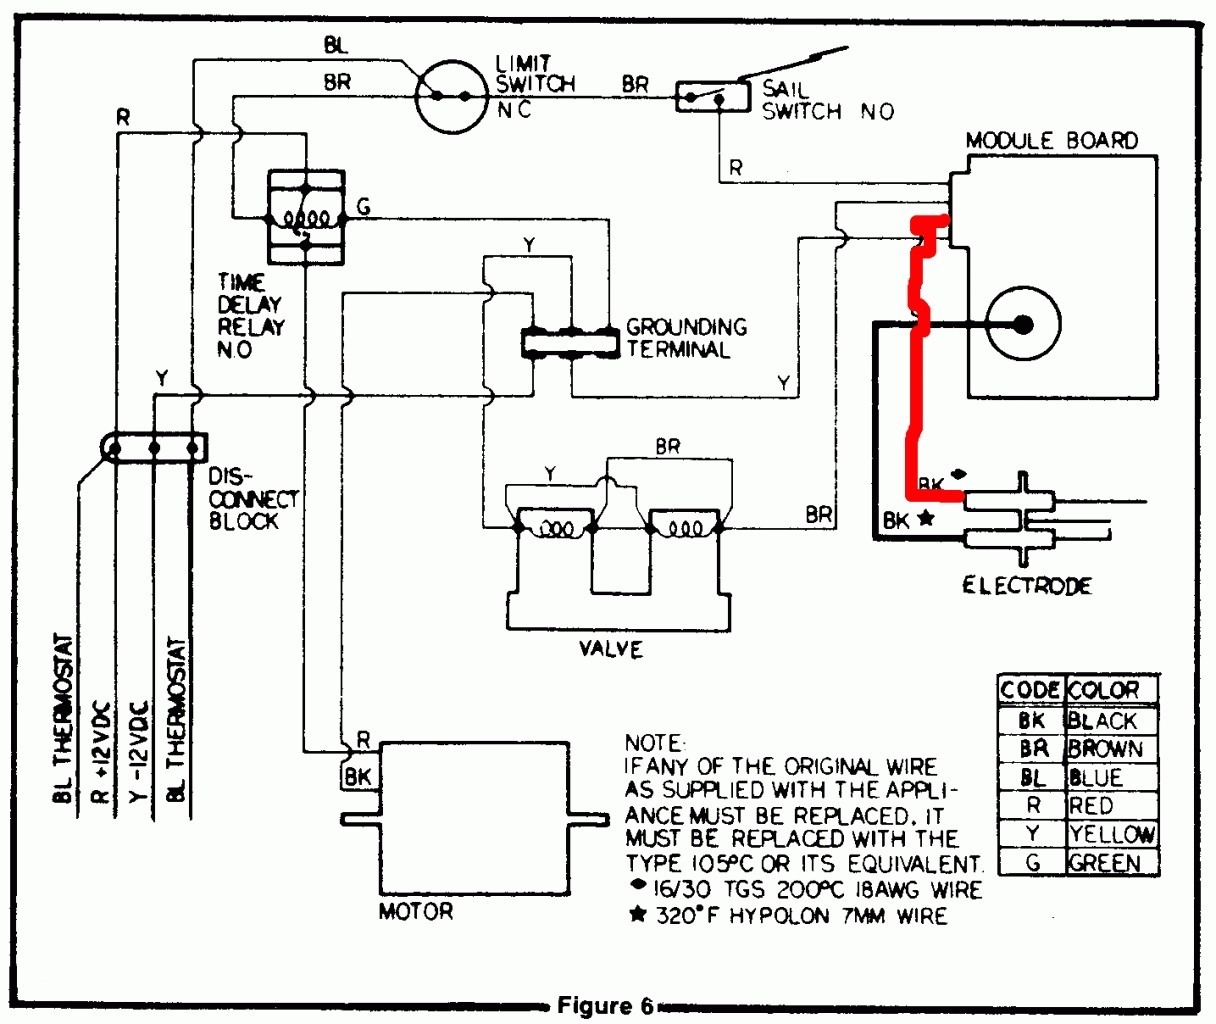 30 Rv Wiring Diagram Coleman Mach Thermostat | Manual E-Books - Coleman Mach Thermostat Wiring Diagram